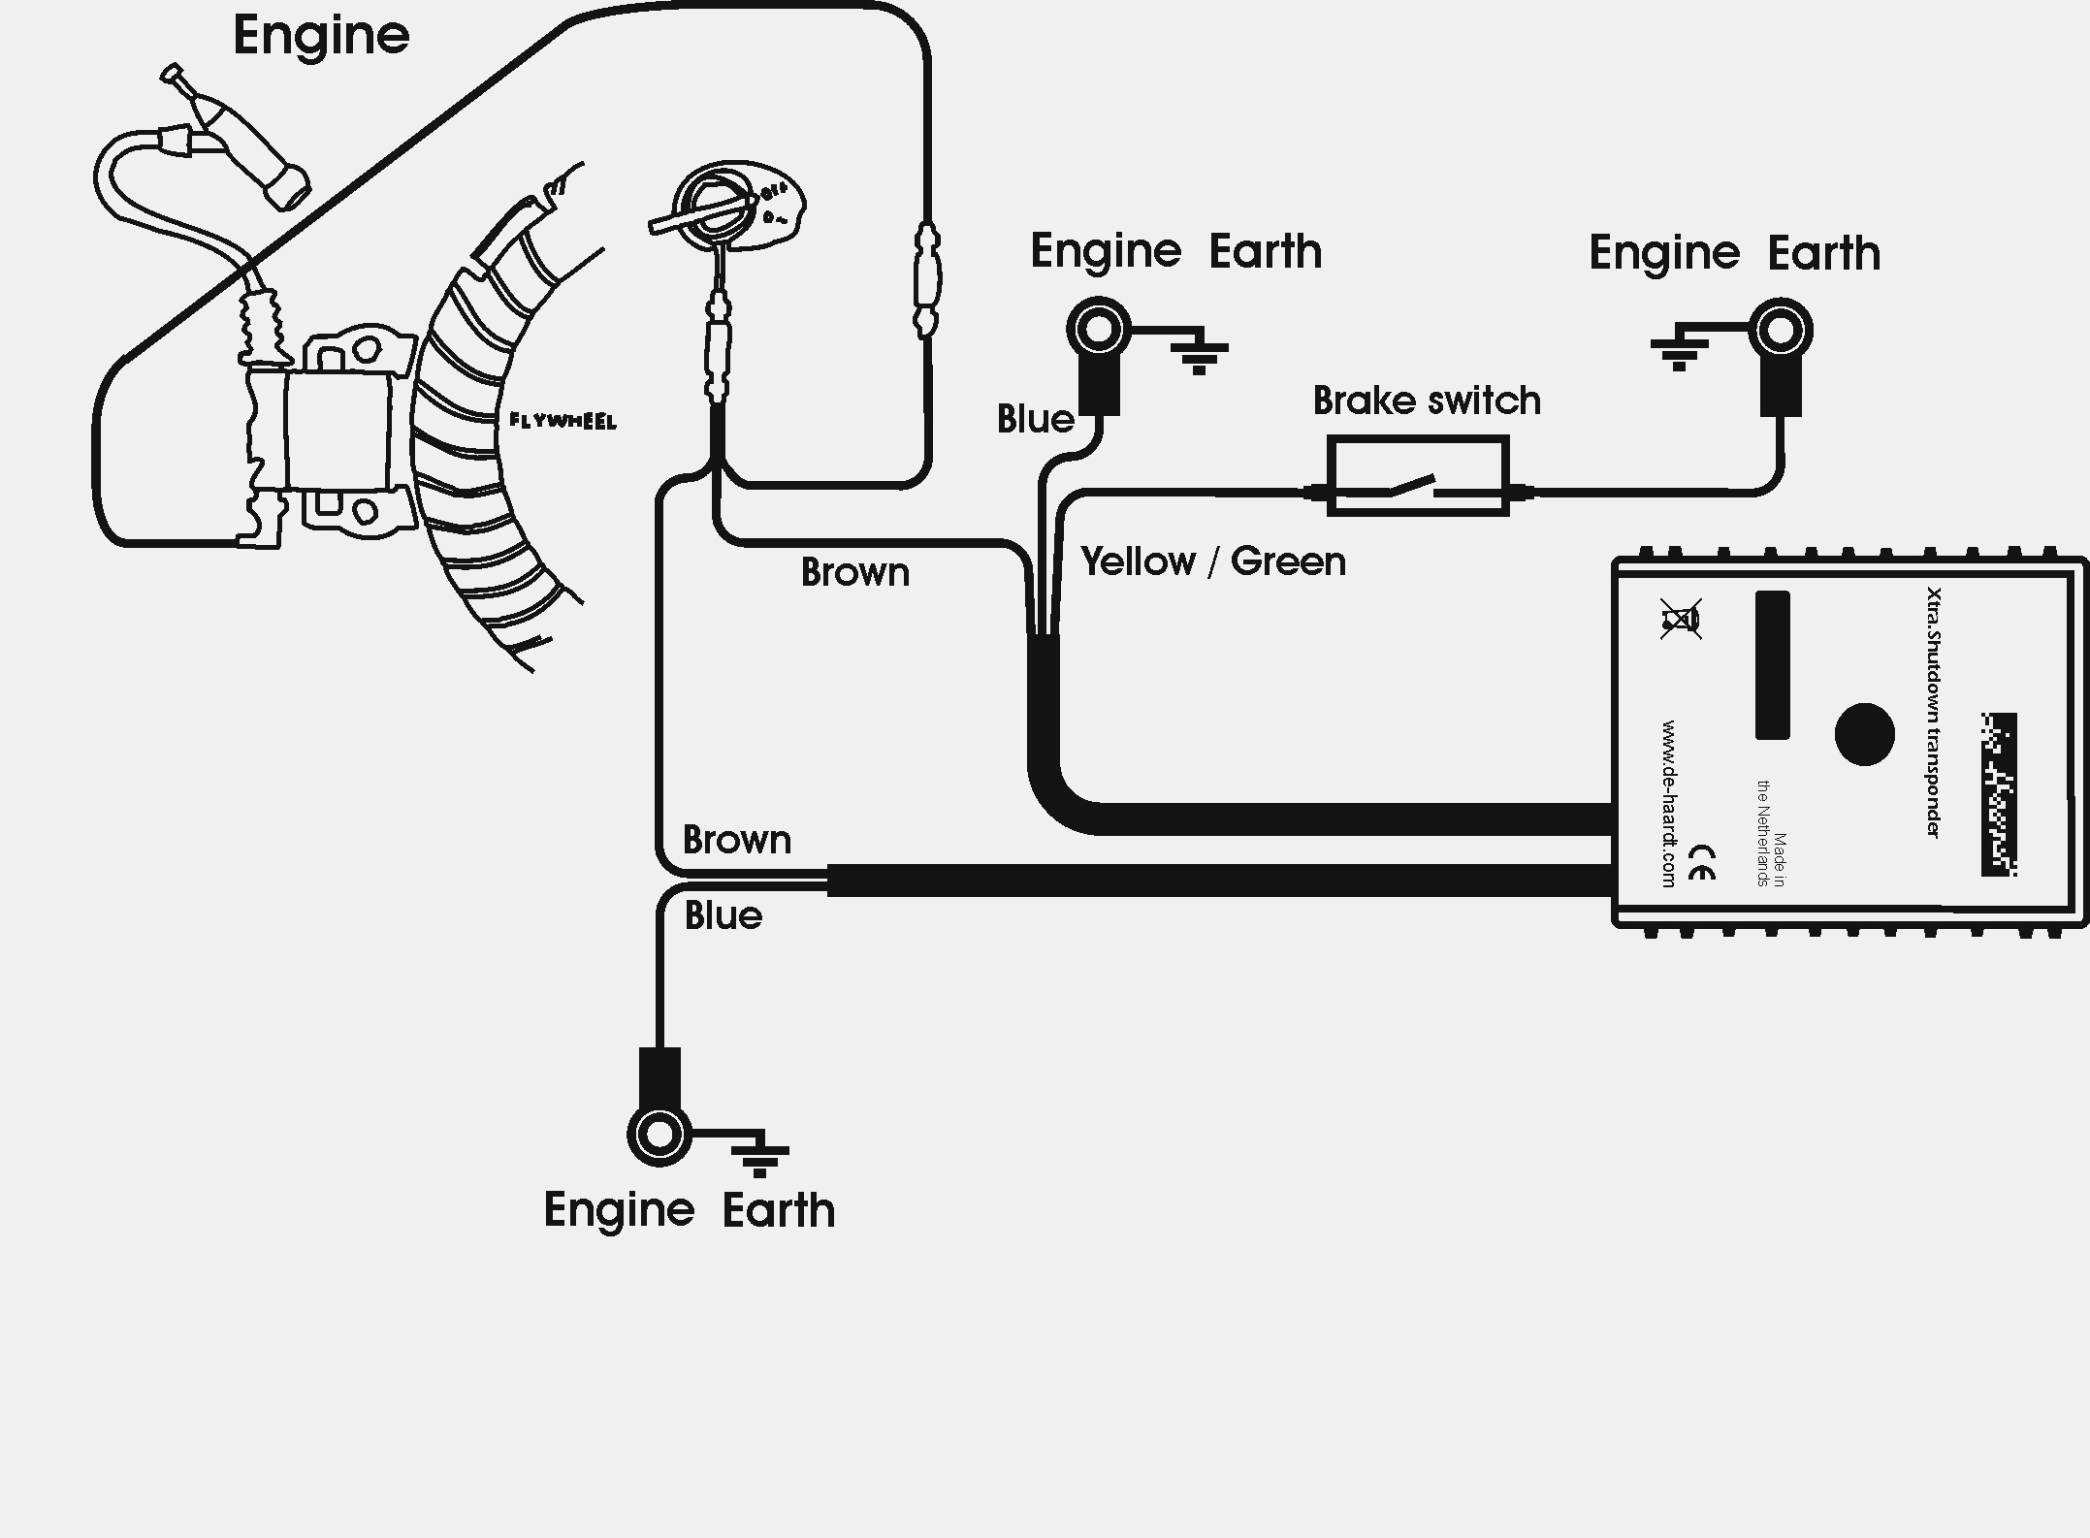 Ignition Predator 420Cc Engine Wiring Diagram from static-cdn.imageservice.cloud